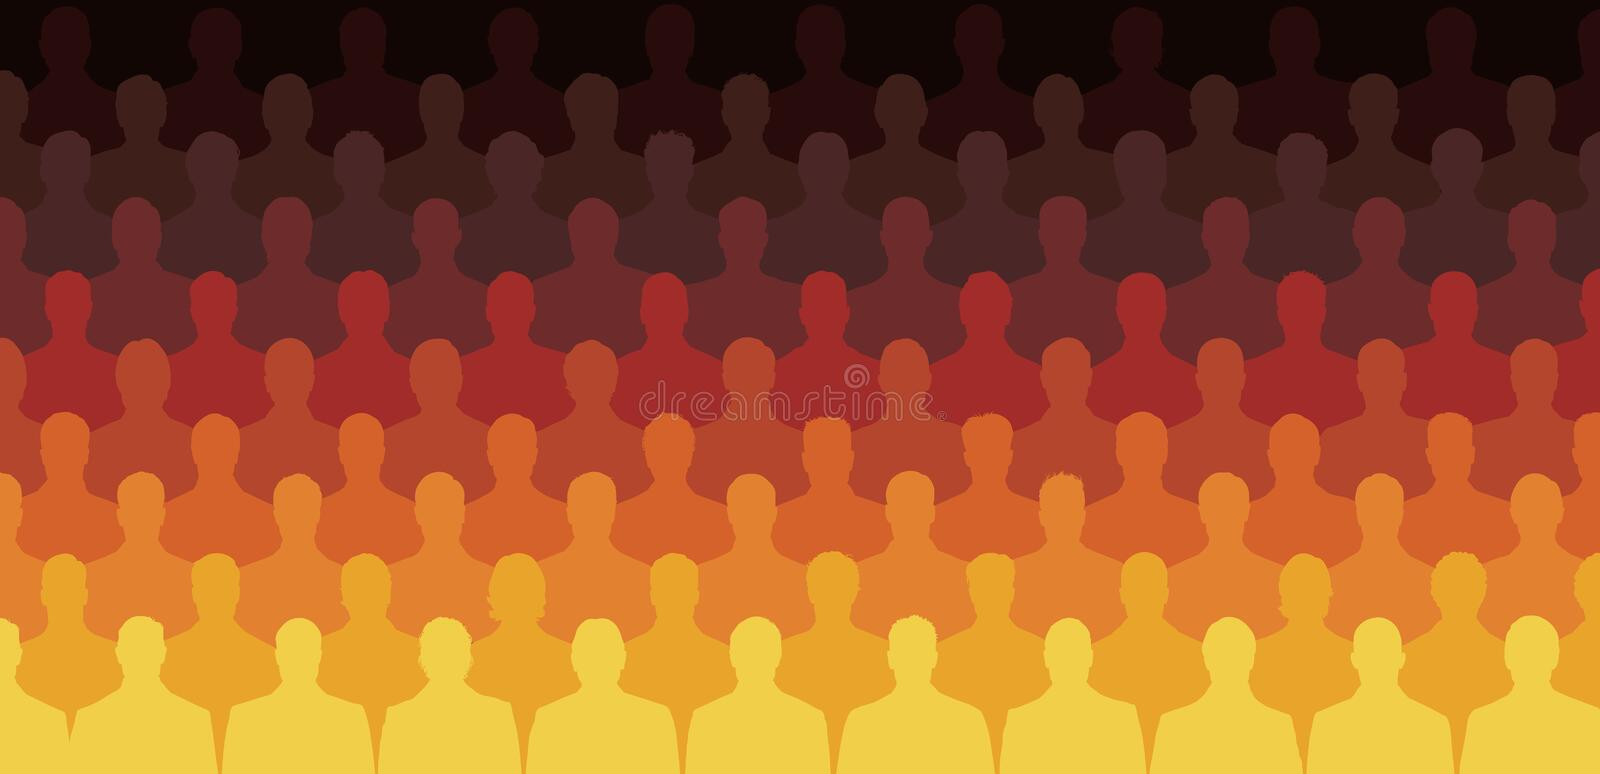 Sitting Silhouette People Stock Vector - Image: 39873088